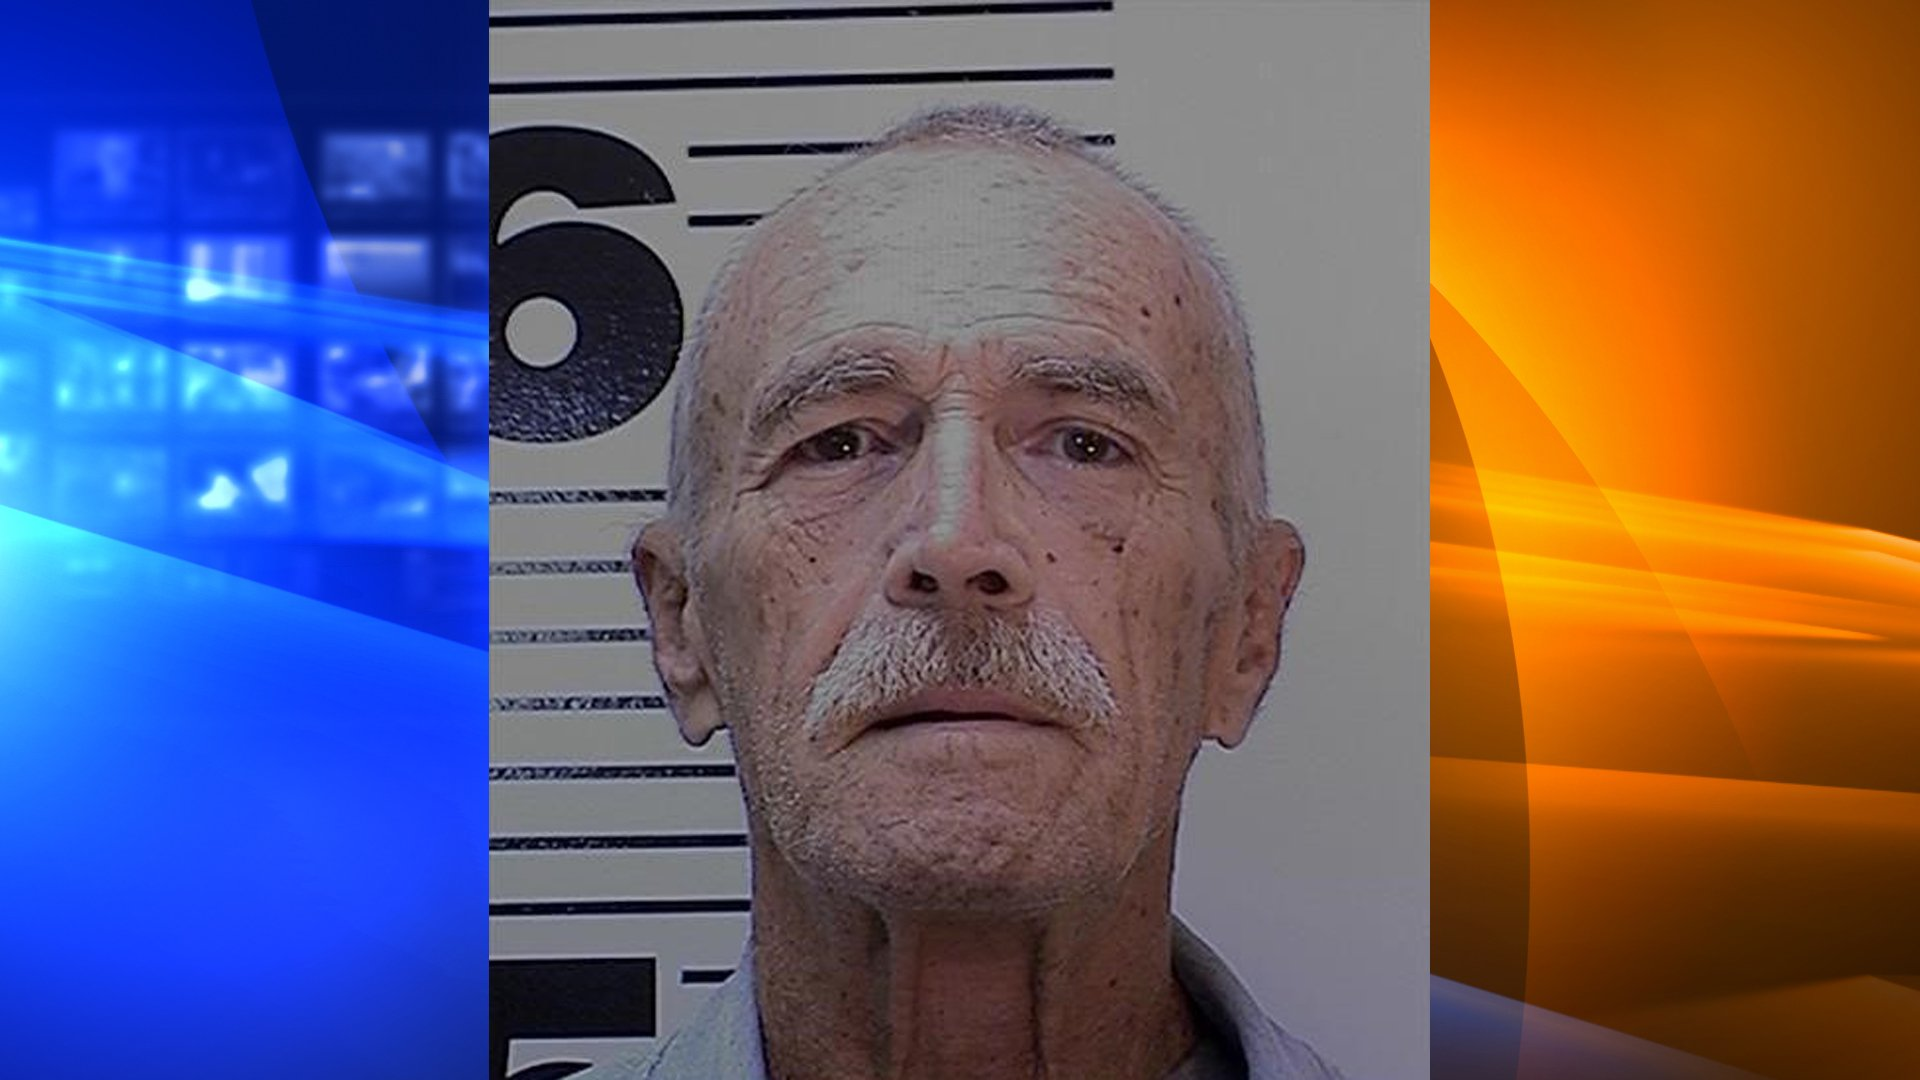 Death row inmate John Abel, 75, pictured in an undated photo provided by the California Department of Corrections and Rehabilitation.